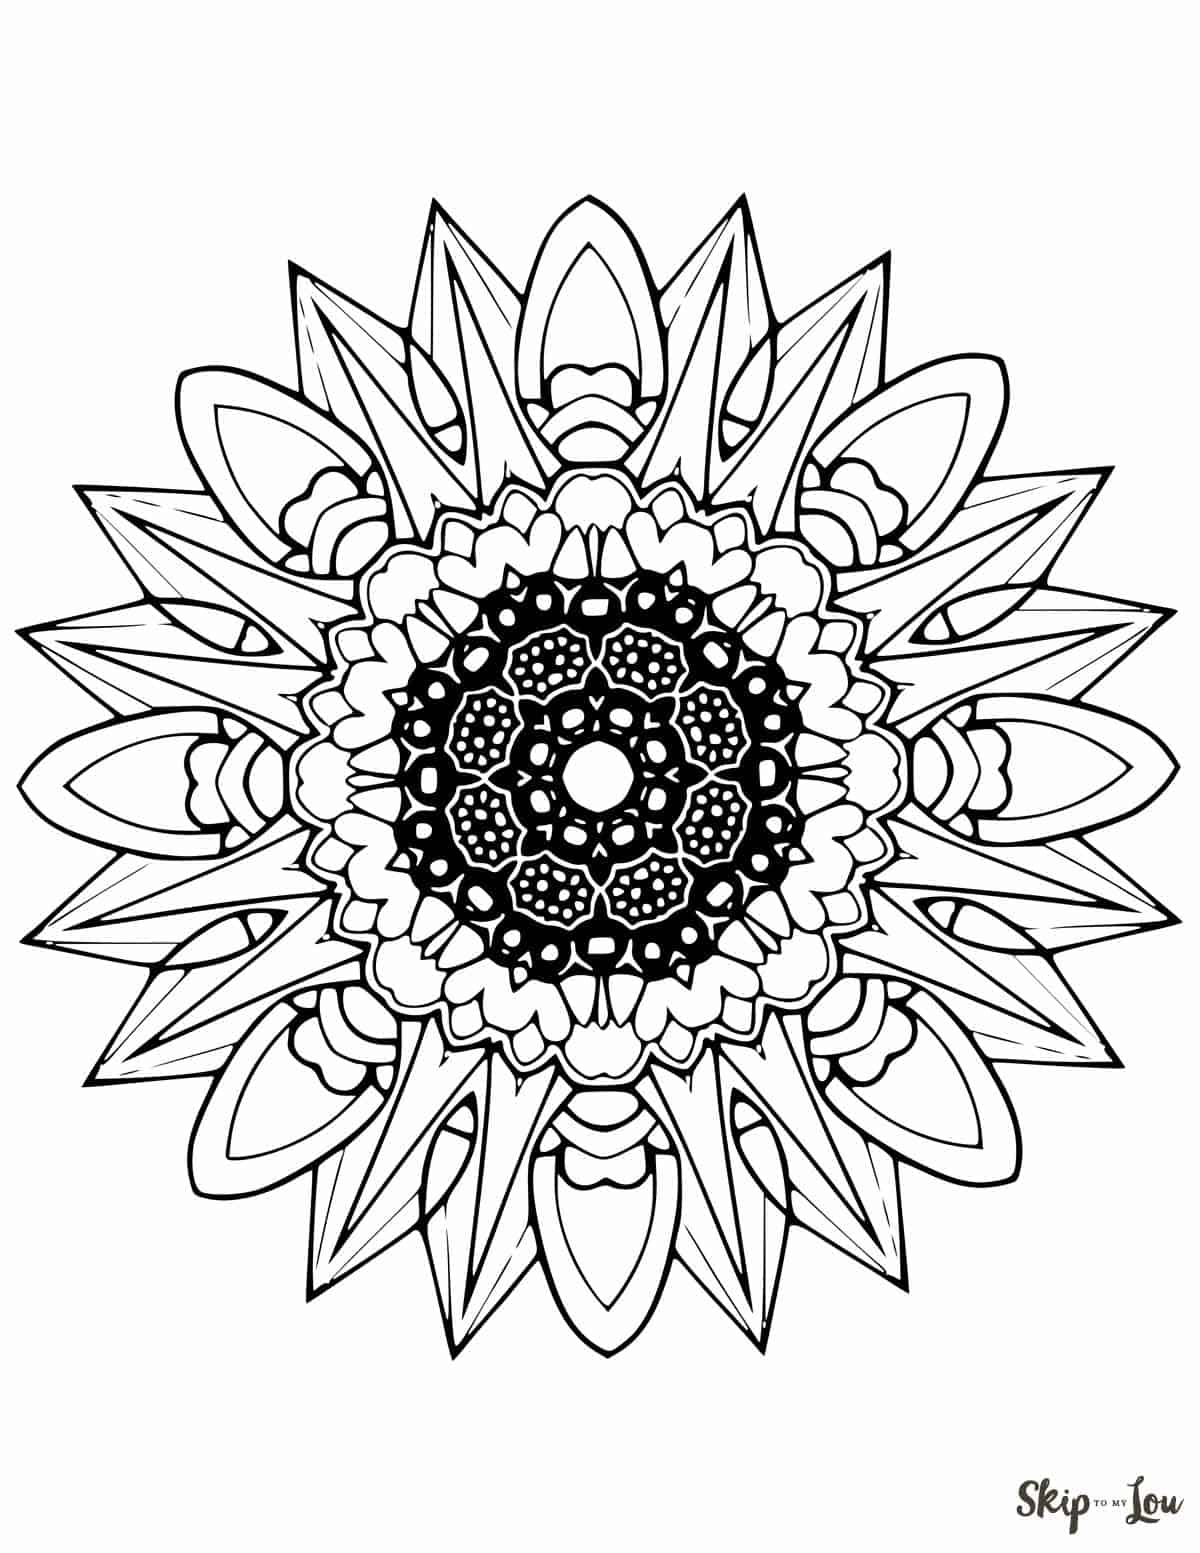 Color Your Stress Away With Mandala Coloring Pages